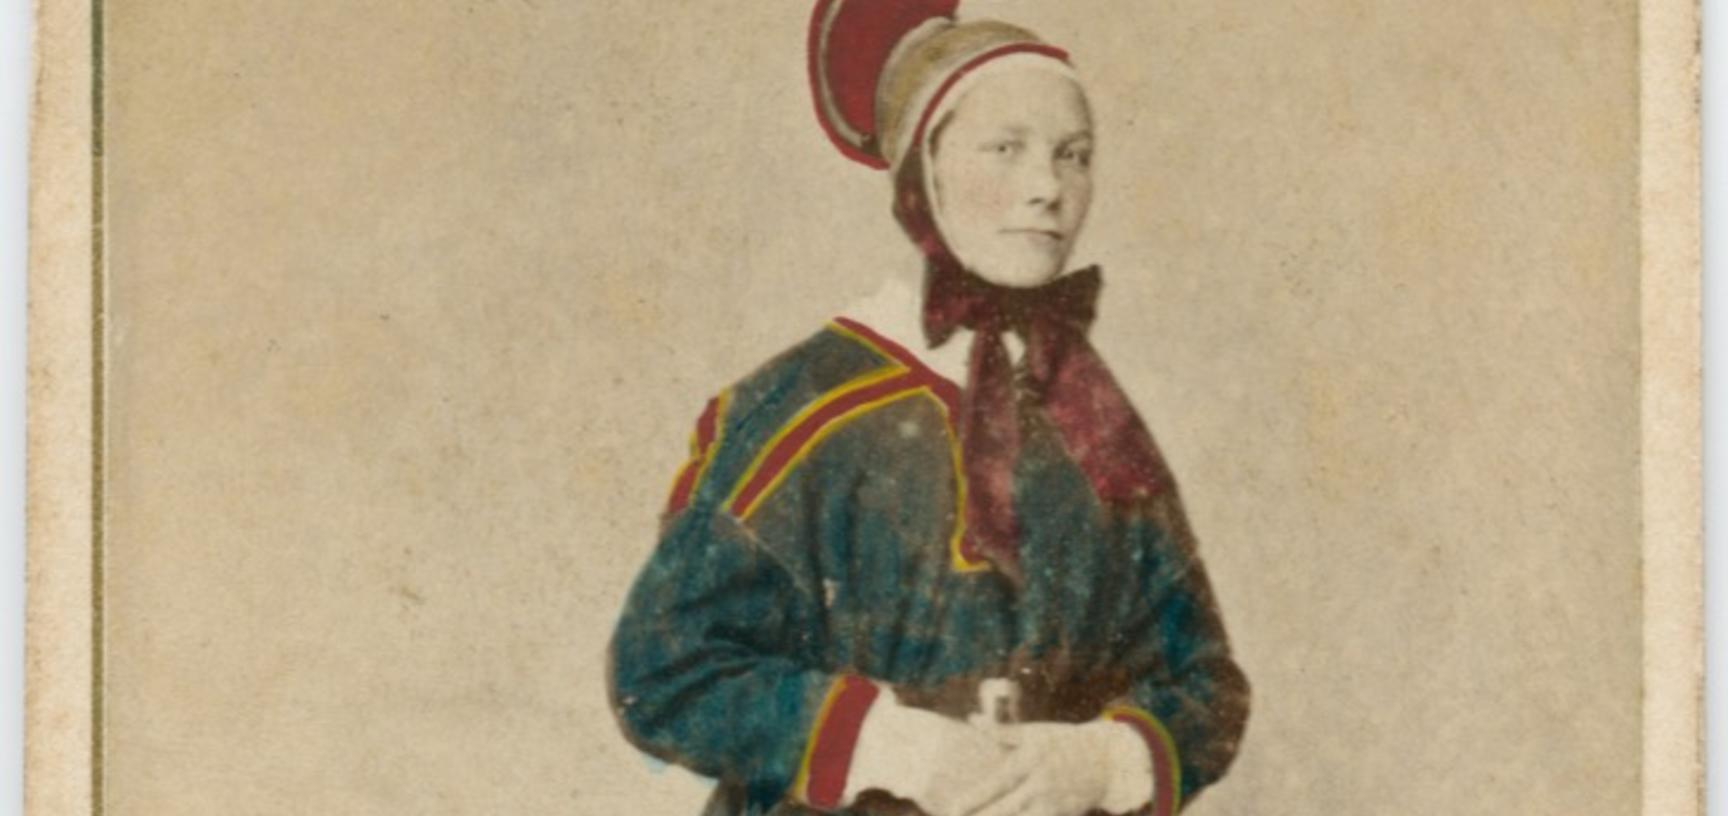 Hand-coloured studio portrait of a Saami woman, identified as a wife (or married woman), standing, wearing a distinctive hat, described on the printed caption as being from Karasjok in Finnmark, Norway. Photograph by the Marcus Selmer studio. Bergen, Norw